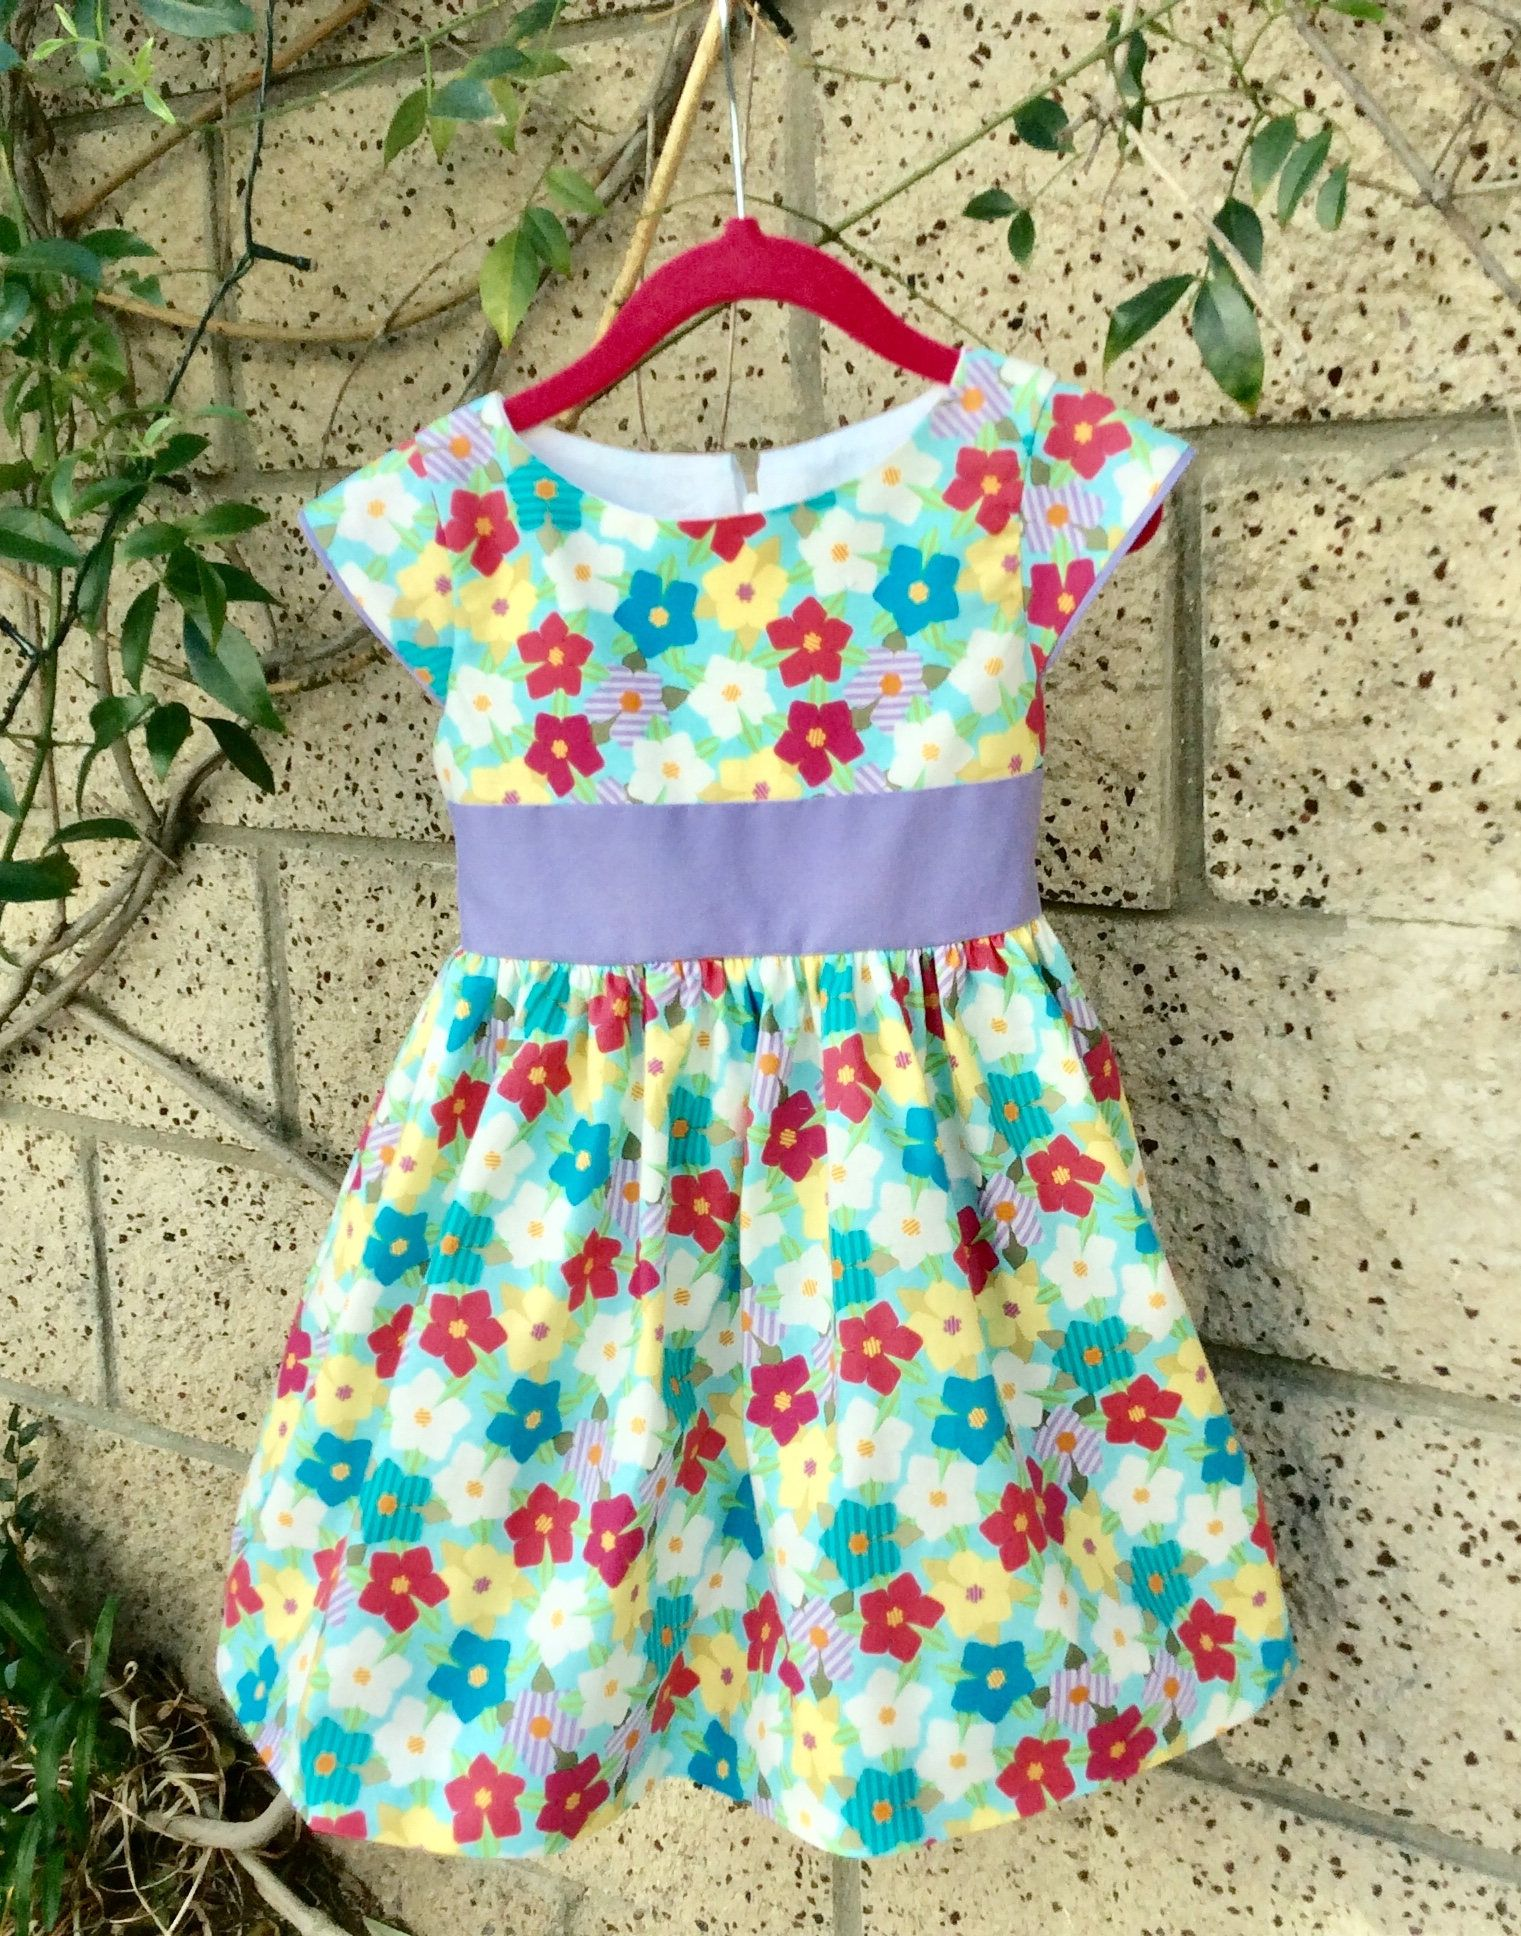 Girls Toddlers Floral Cotton Dress Lined Cap Sleeves Aqua Etsy Girls Cotton Dresses Cotton Dress Summer Floral Cotton Dress [ 1936 x 1521 Pixel ]